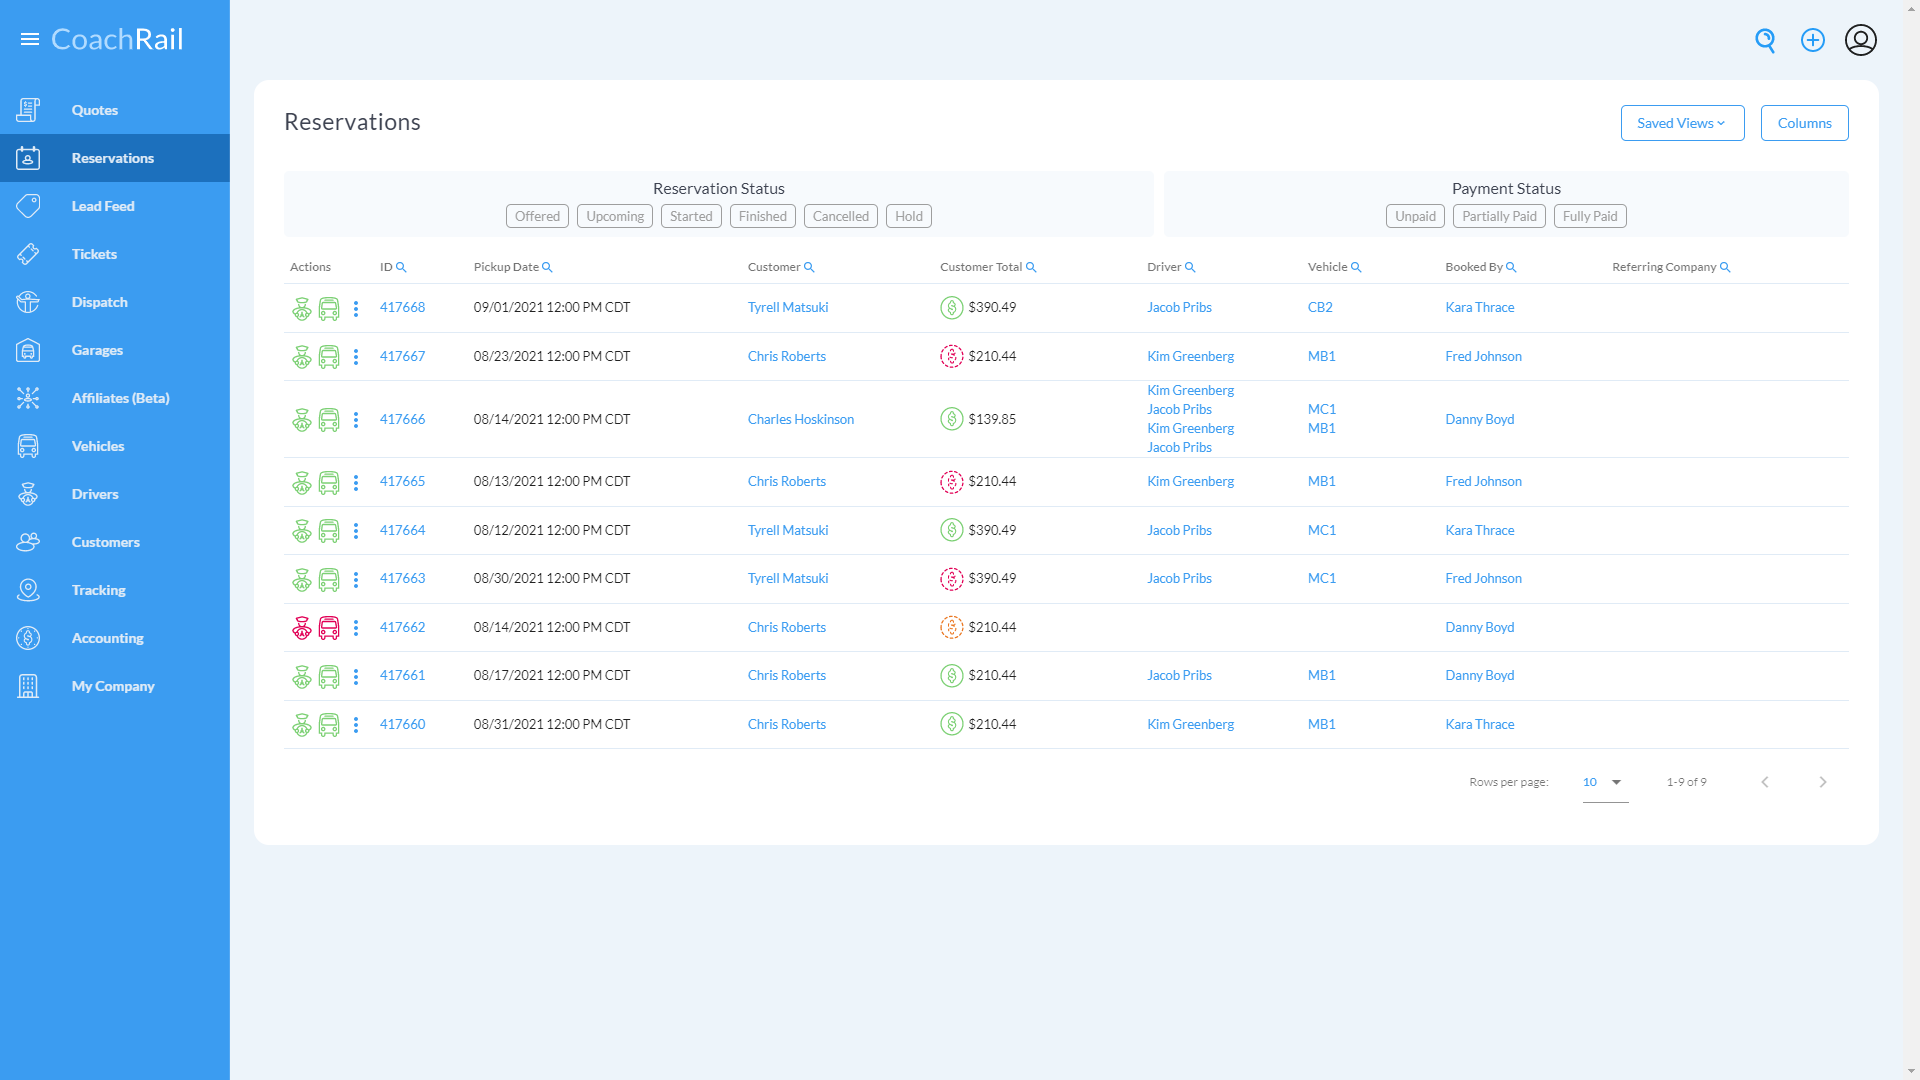 reservations overview screen